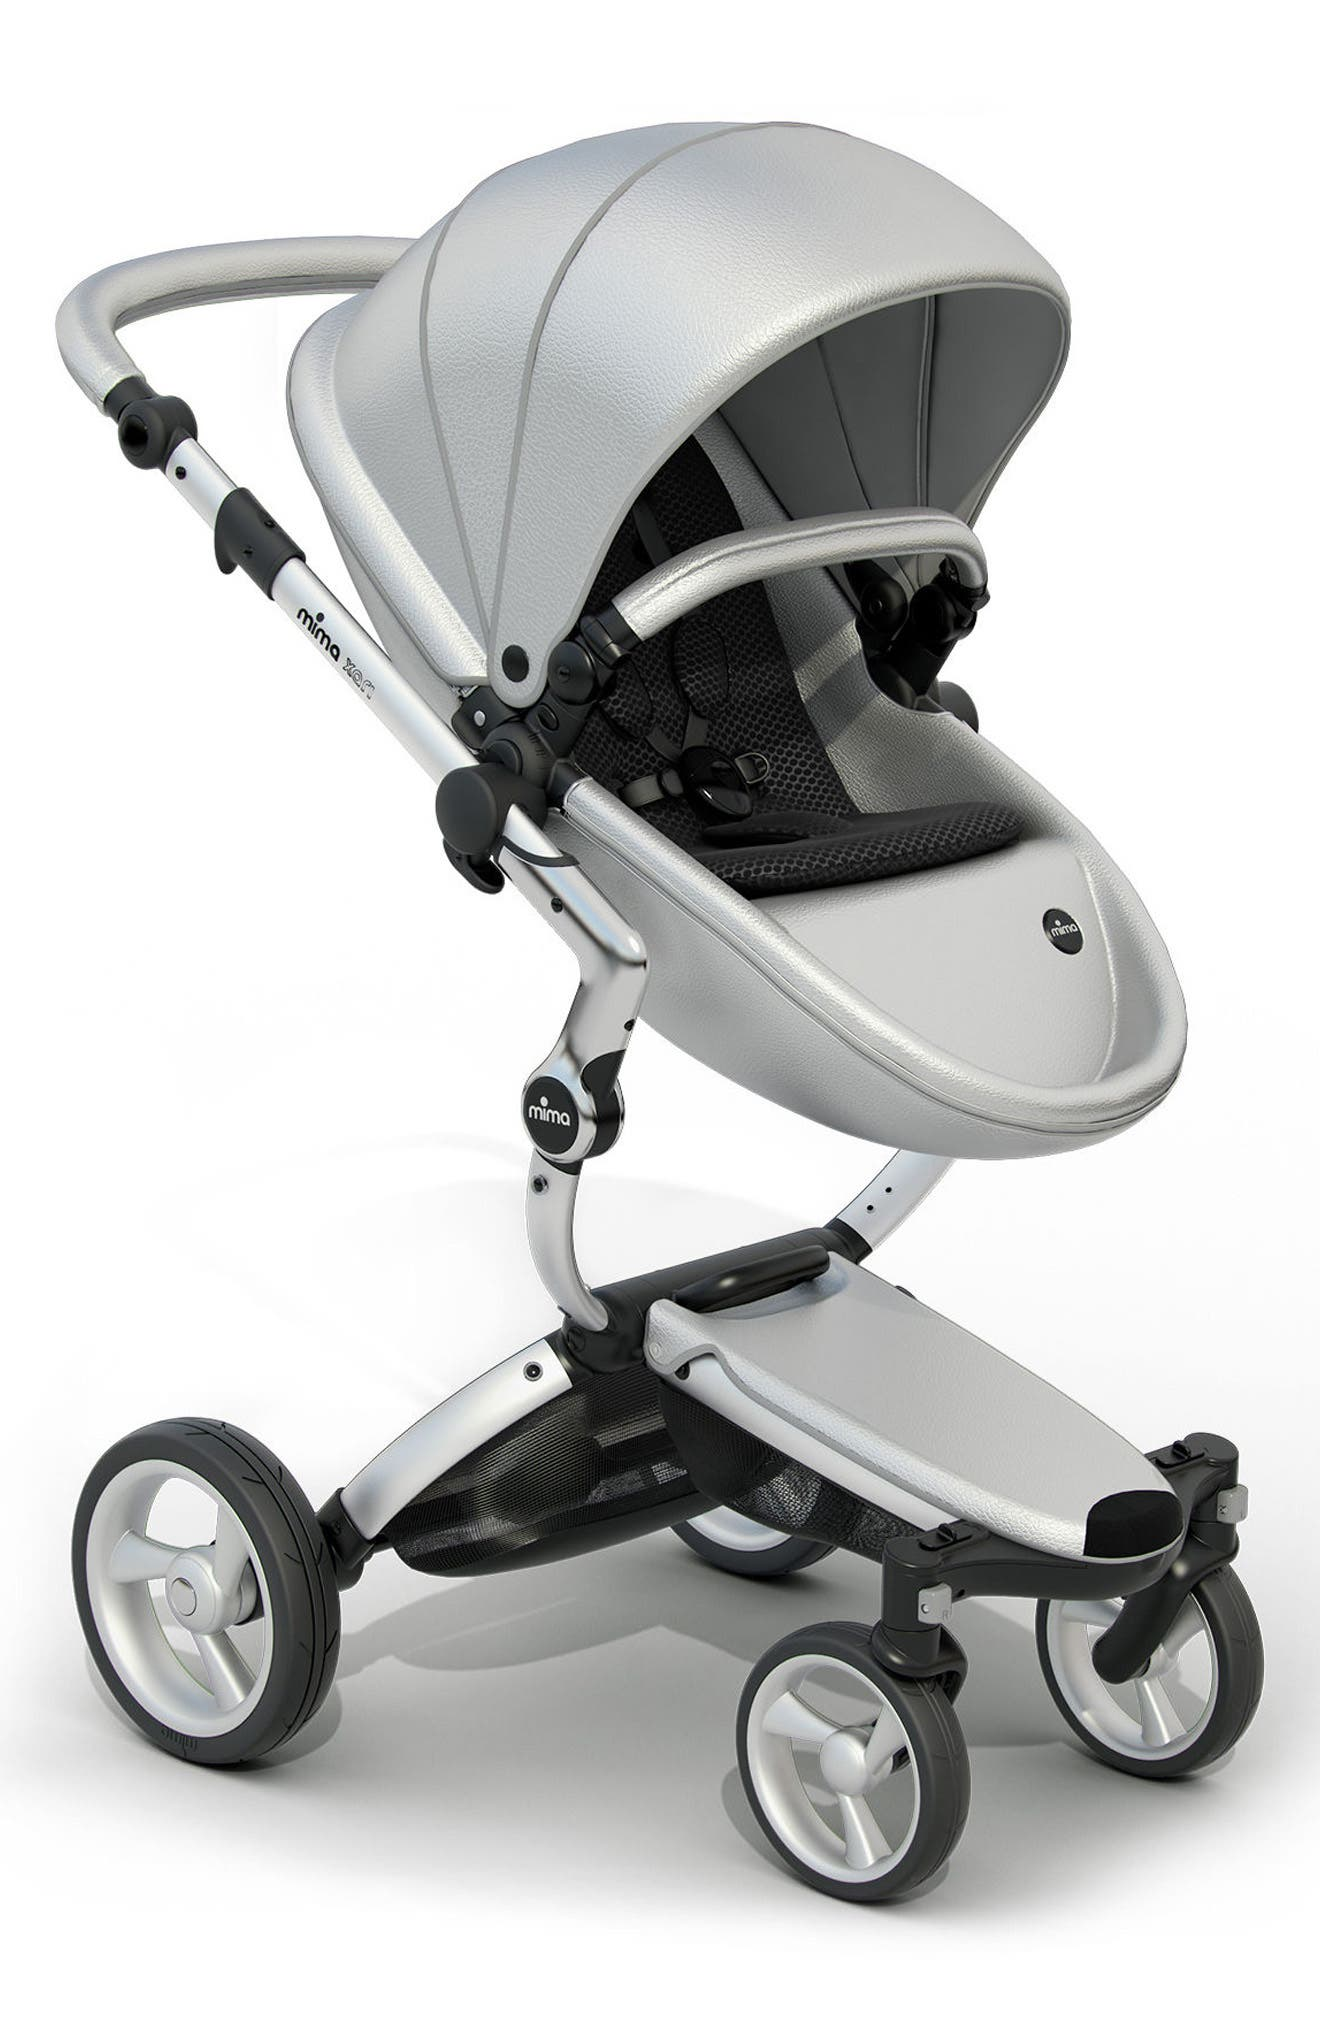 Xari Aluminum Chassis Stroller with Reversible Reclining Seat & Carrycot,                             Main thumbnail 1, color,                             ARGENTO / BLACK